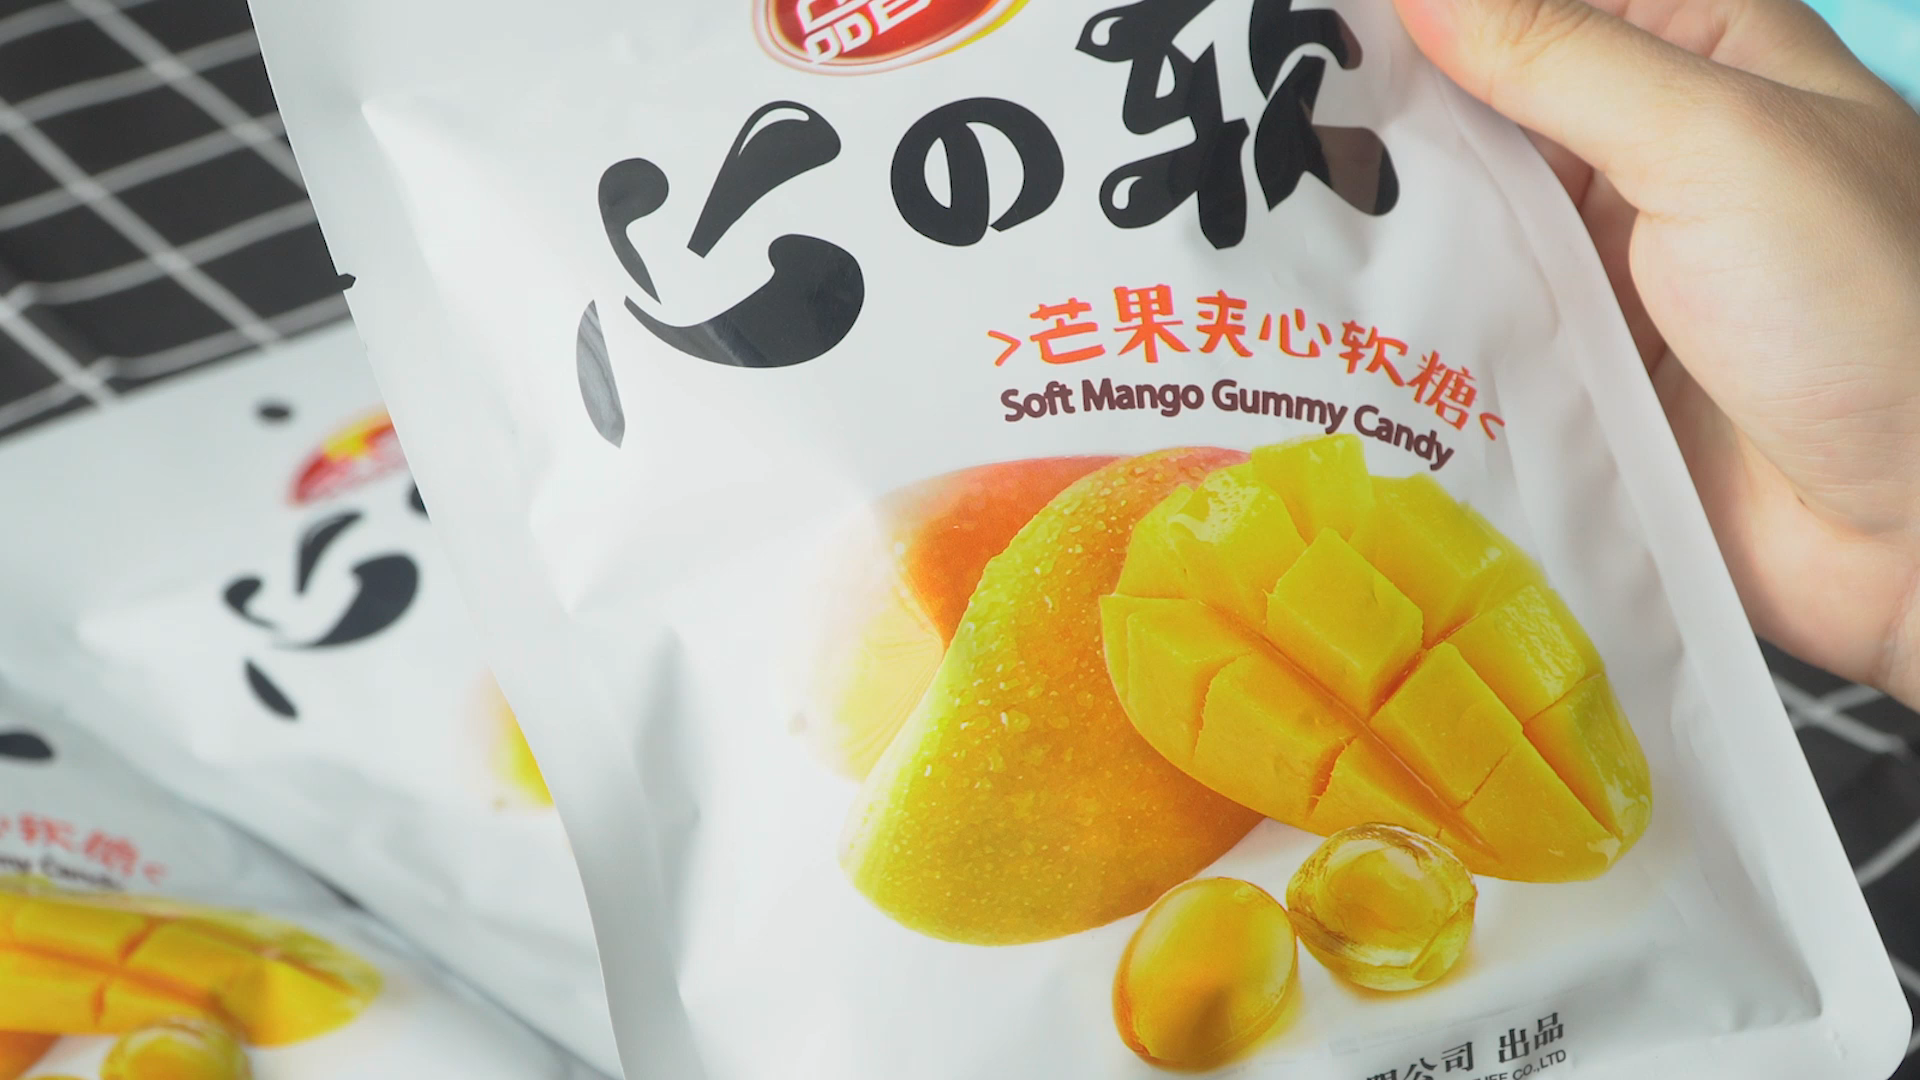 New product hainan specialty rich mango flavored fizzy soft candy and sweets